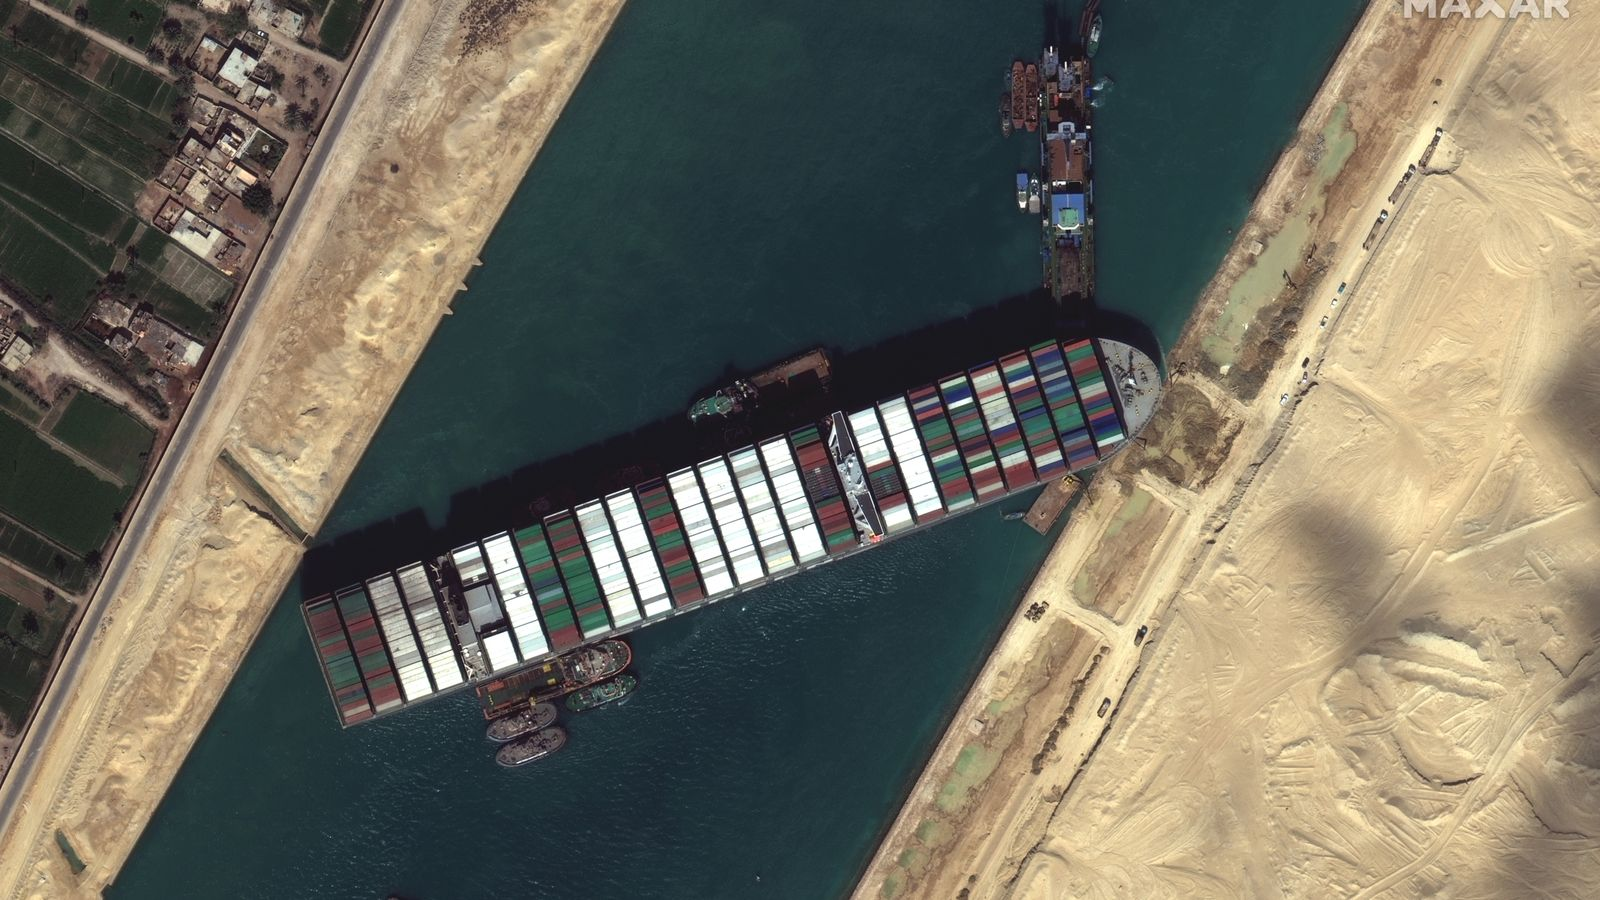 Egypt files £600m compensation claim against owner of ship that blocked Suez Canal